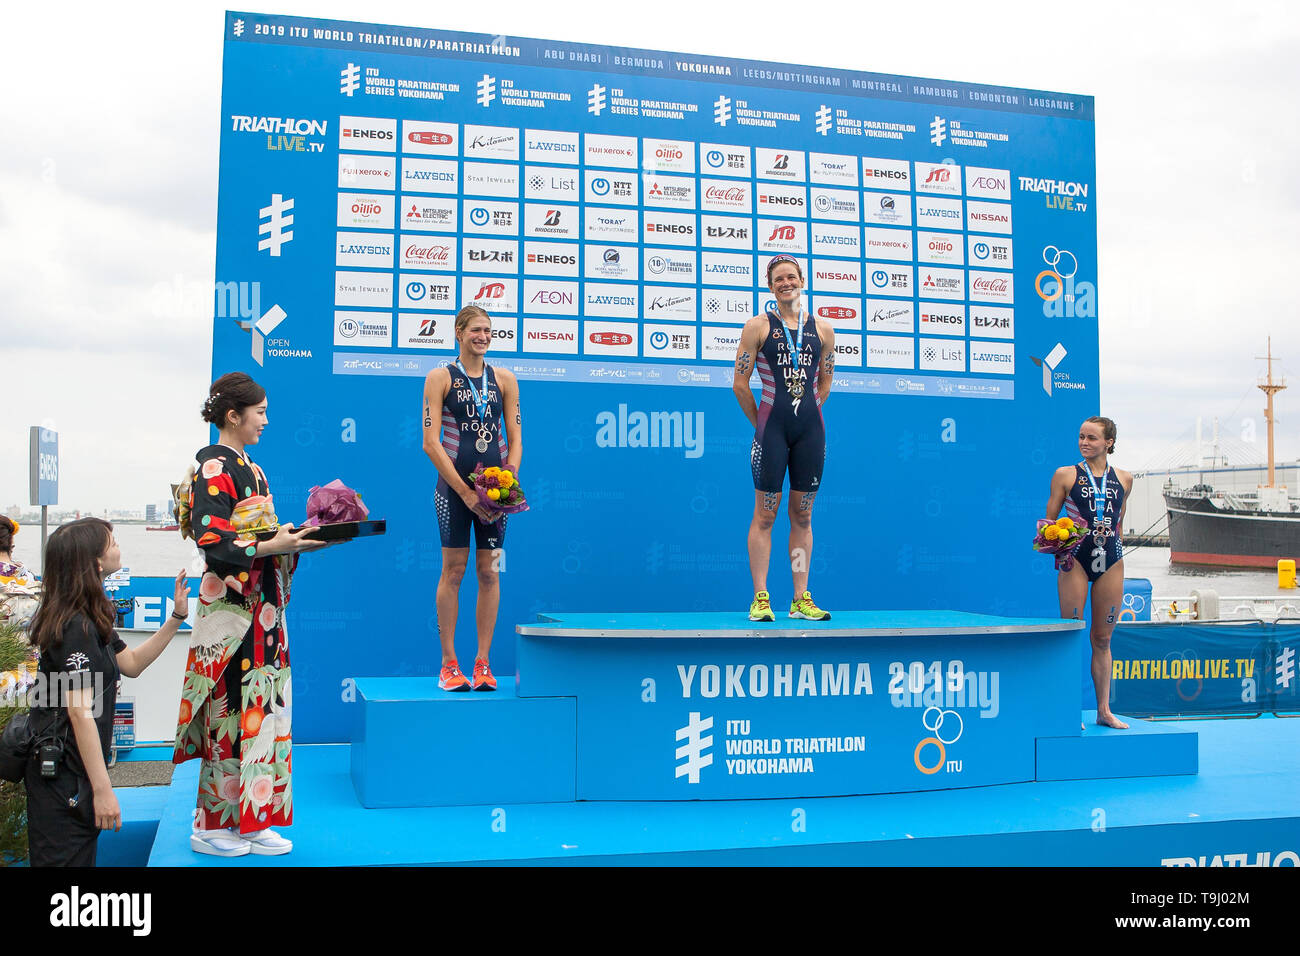 Yokohama, Japan. 18th May, 2019. 2019 ITU World Triathlon, World Paratriathlon Yokohama at Yamashita Park and Minato Mirai, Yokohama. Zaferes, Rappaport, Spivey (Photos by Michael Steinebach/AFLO) Credit: Aflo Co. Ltd./Alamy Live News Stock Photo